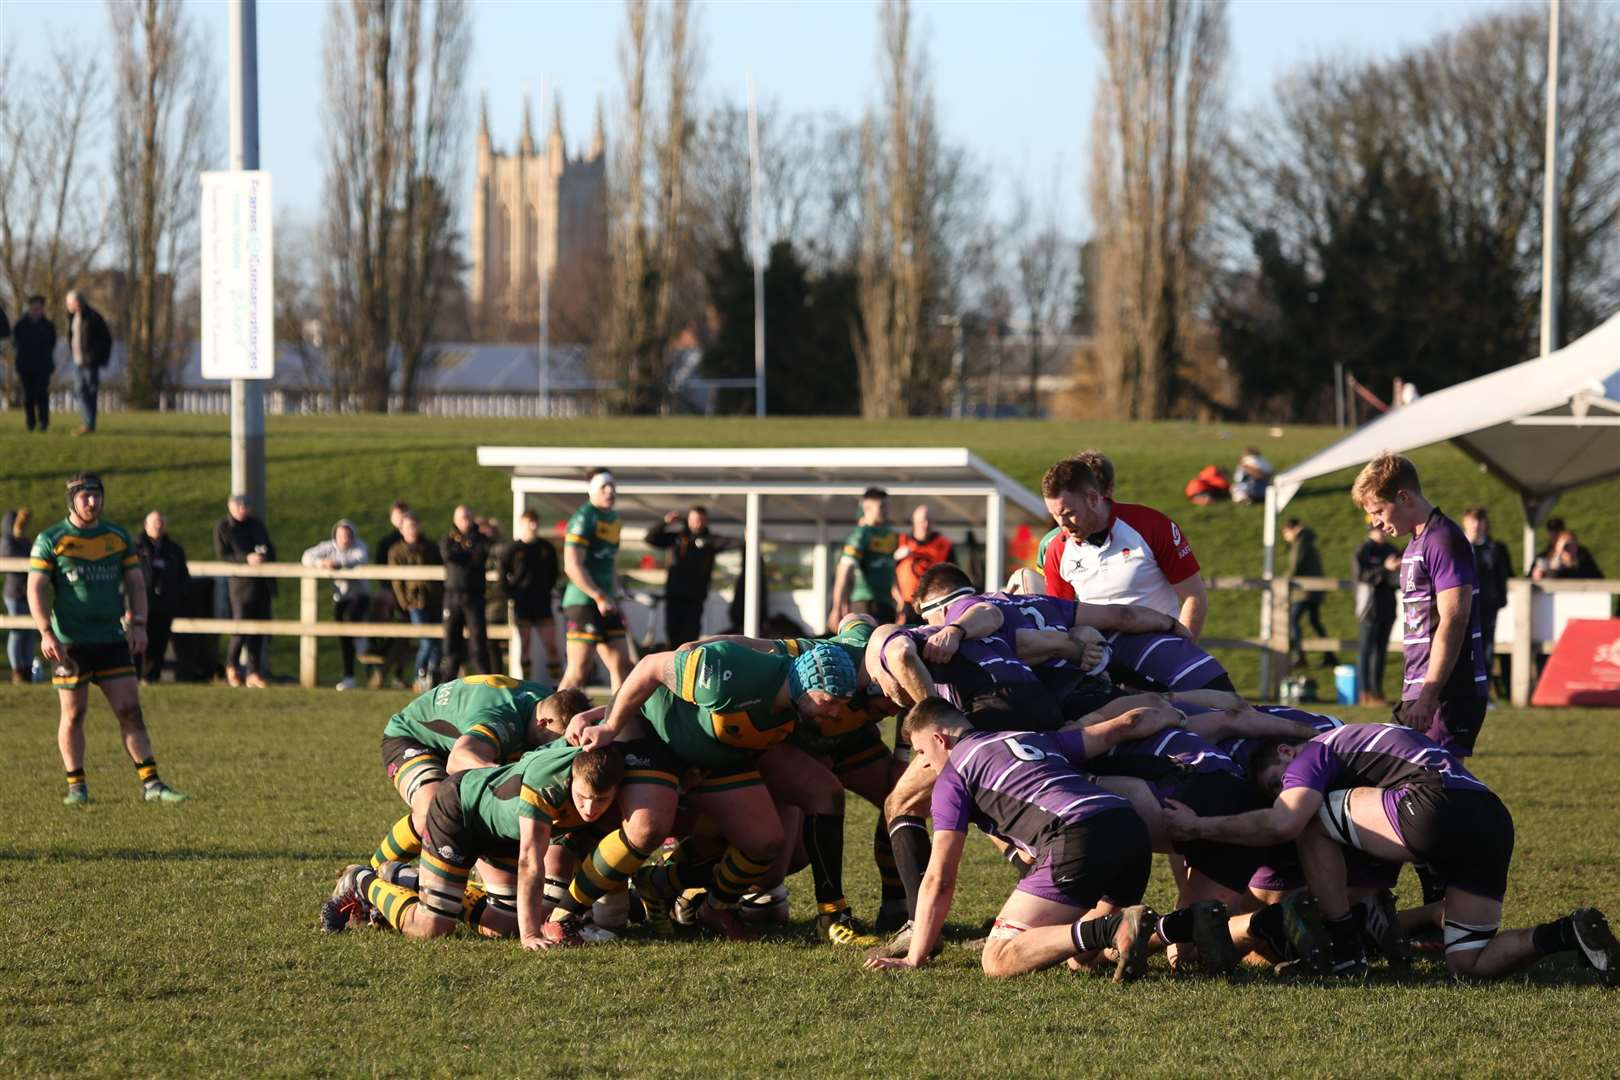 Bury St Edmunds rugby v Leicester Lions - scrum timePicture: Shawn Pearce (28835924)